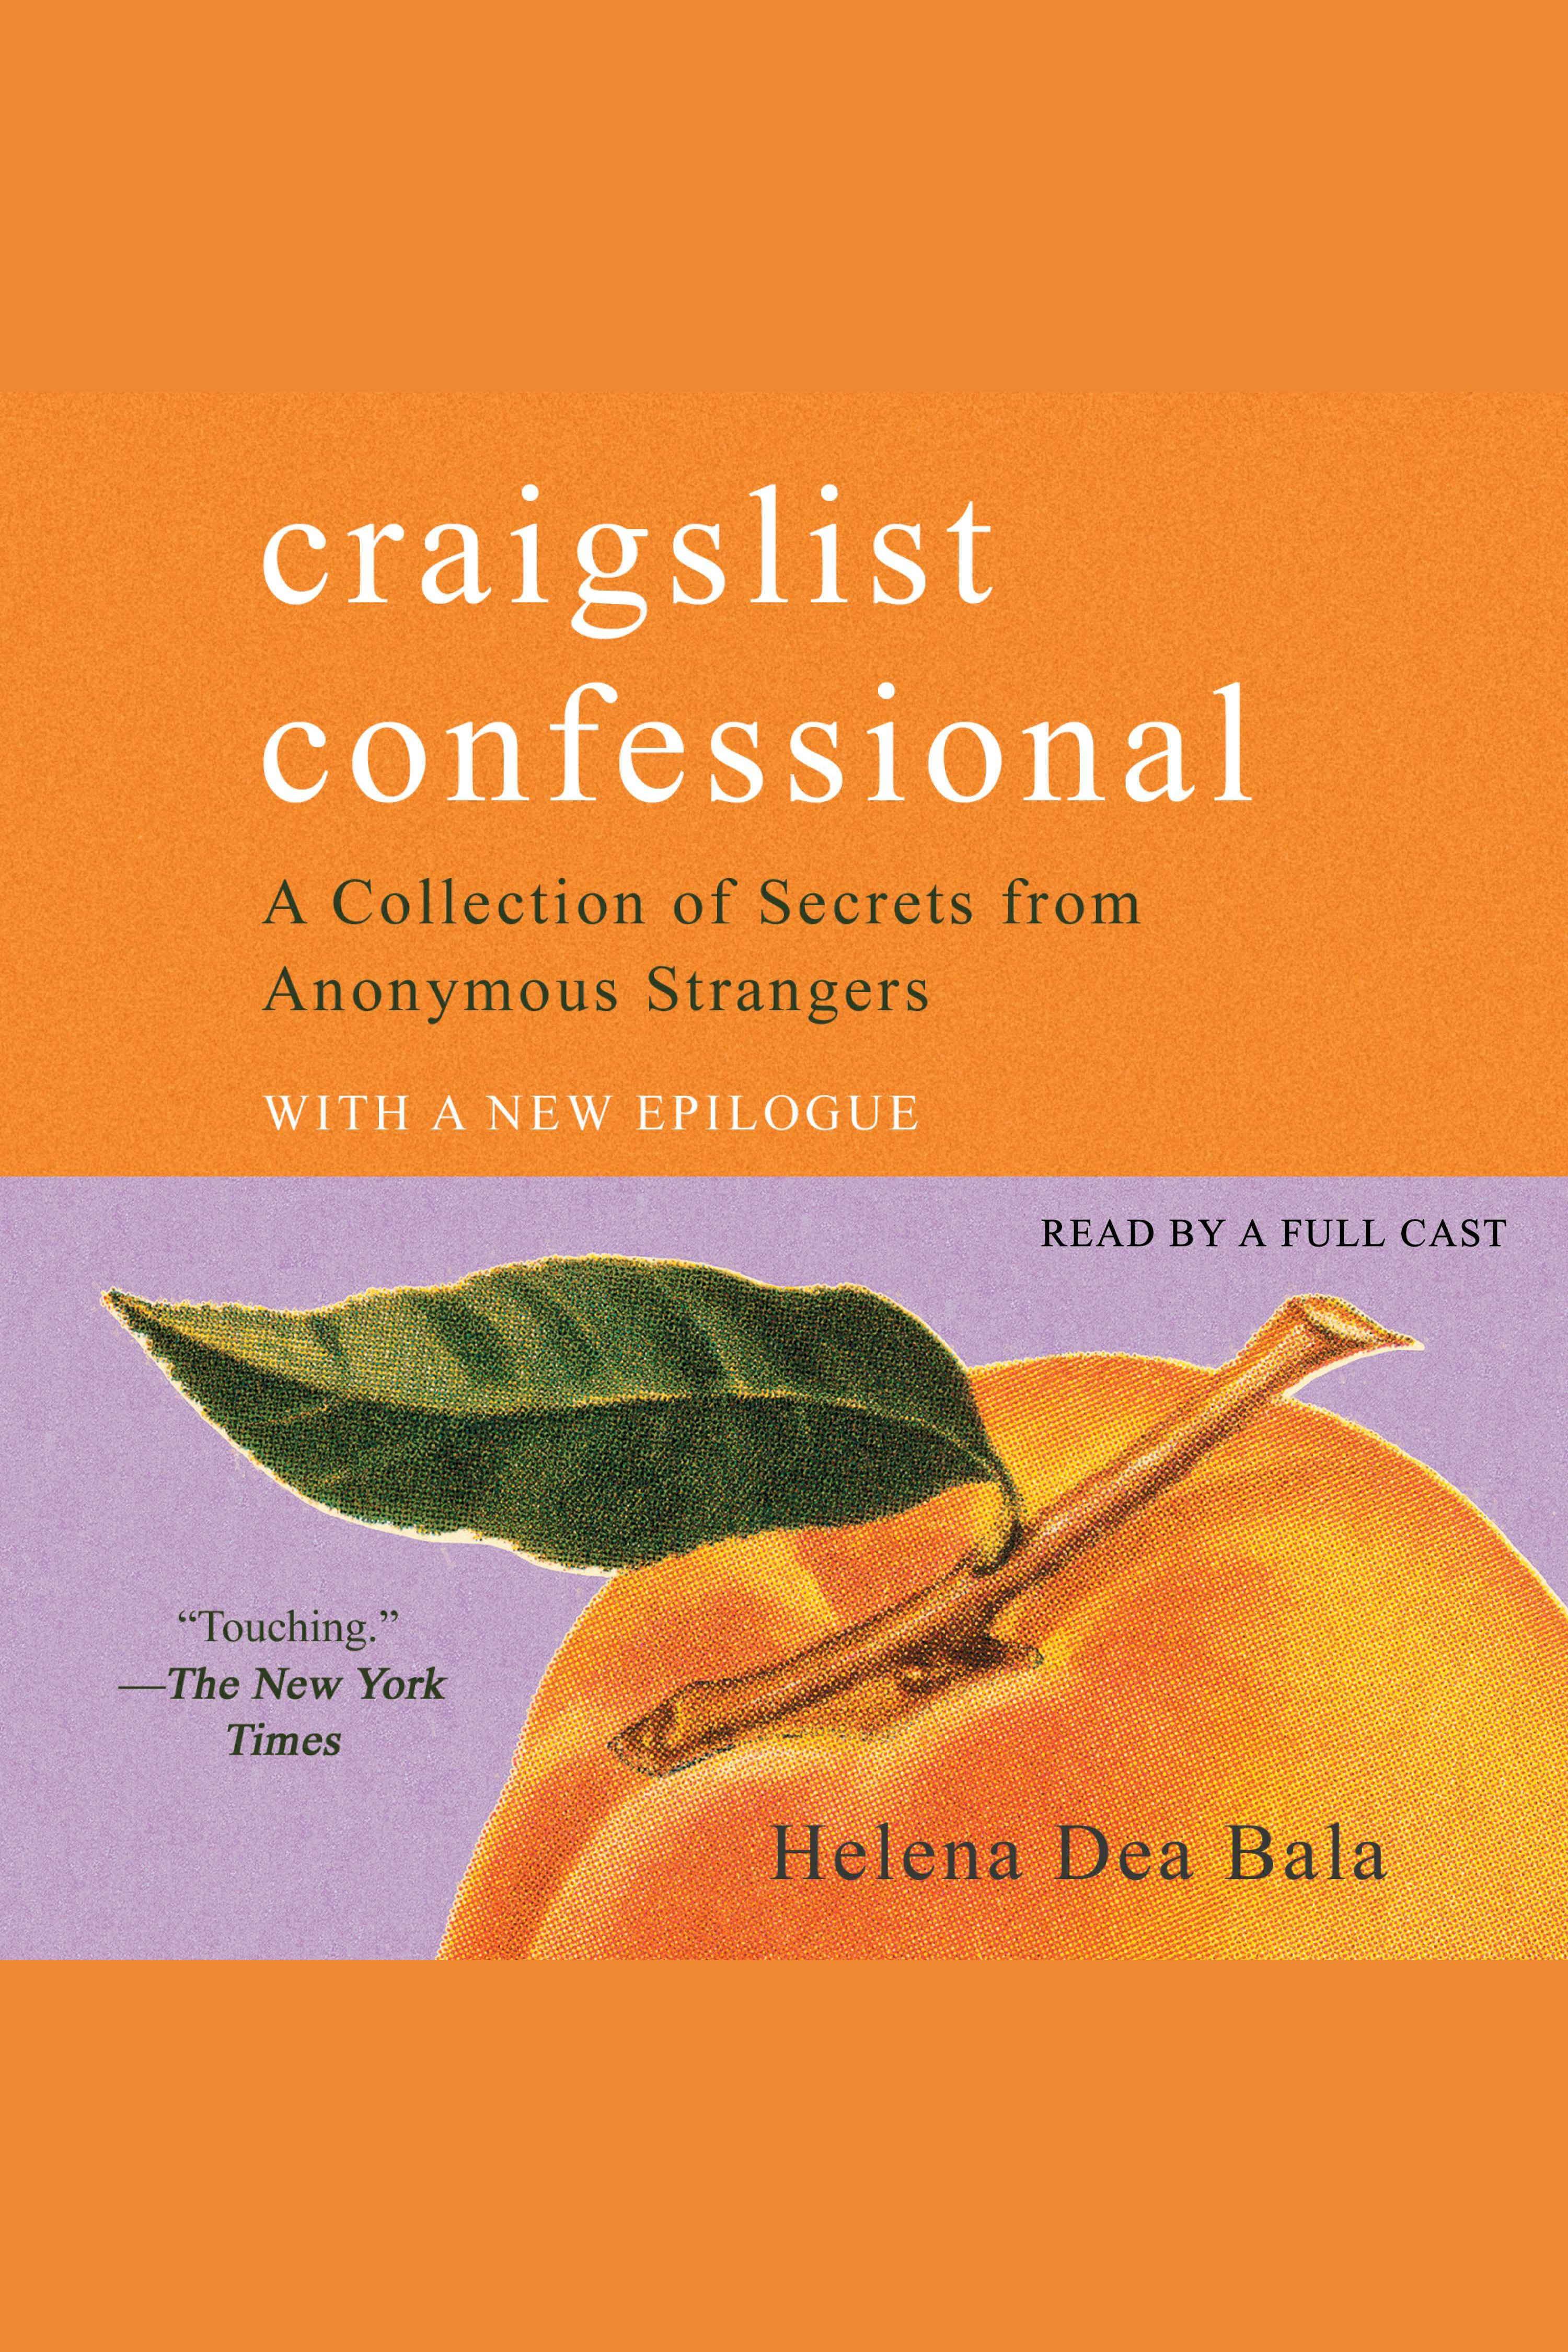 Craigslist Confessional A Collection of Secrets from Anonymous Strangers